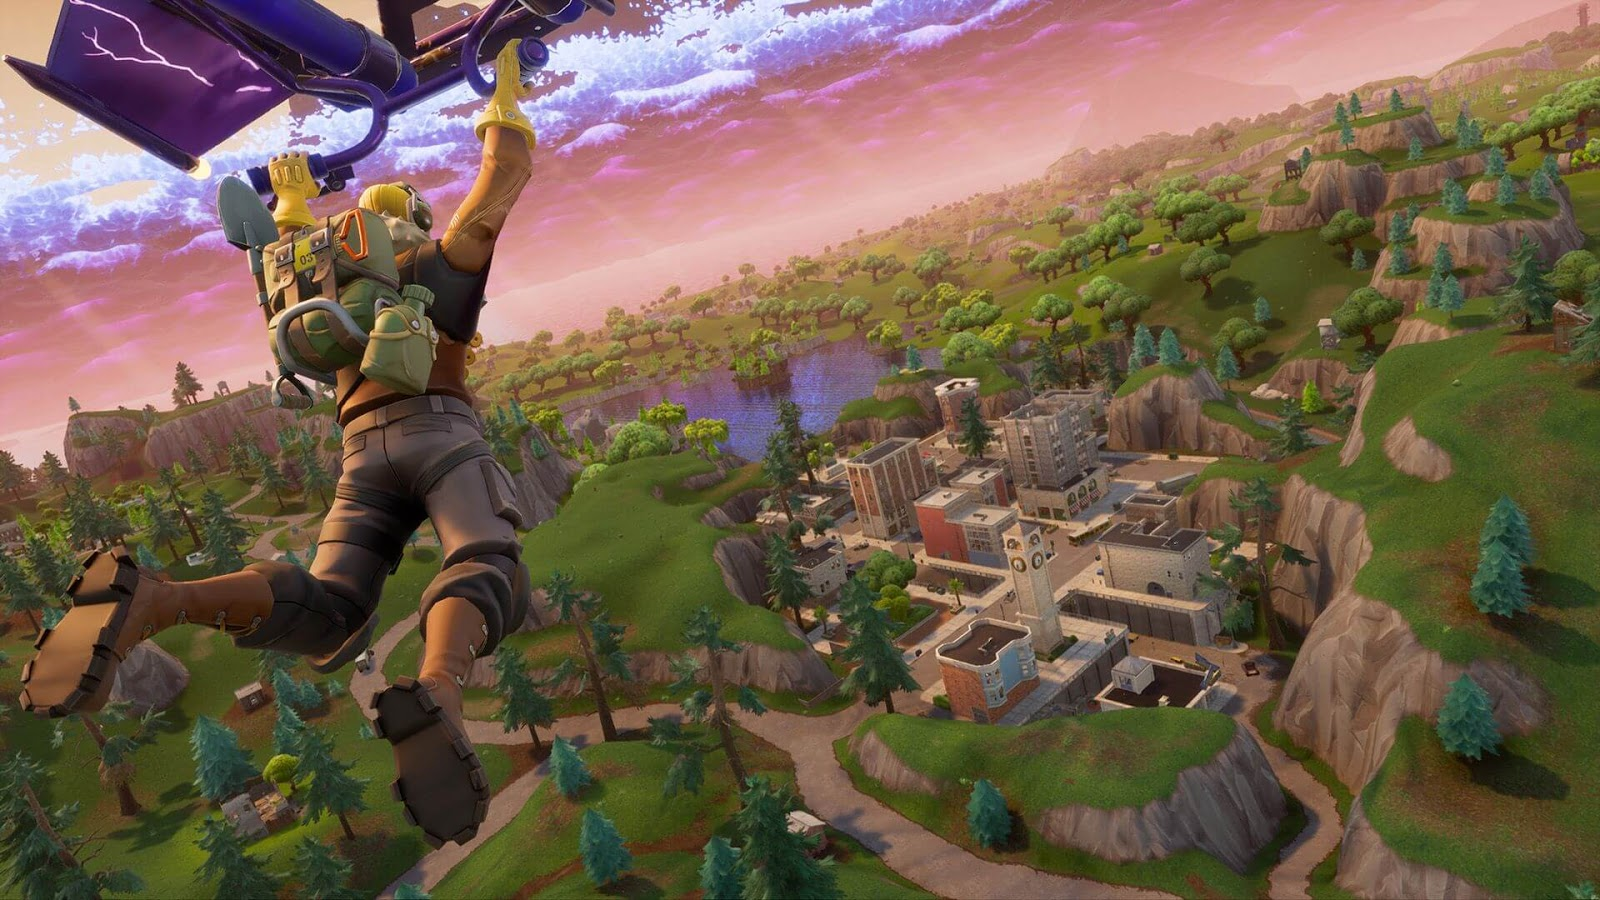 Fortnite Going To Introduced Its First-Ever Practice Mode